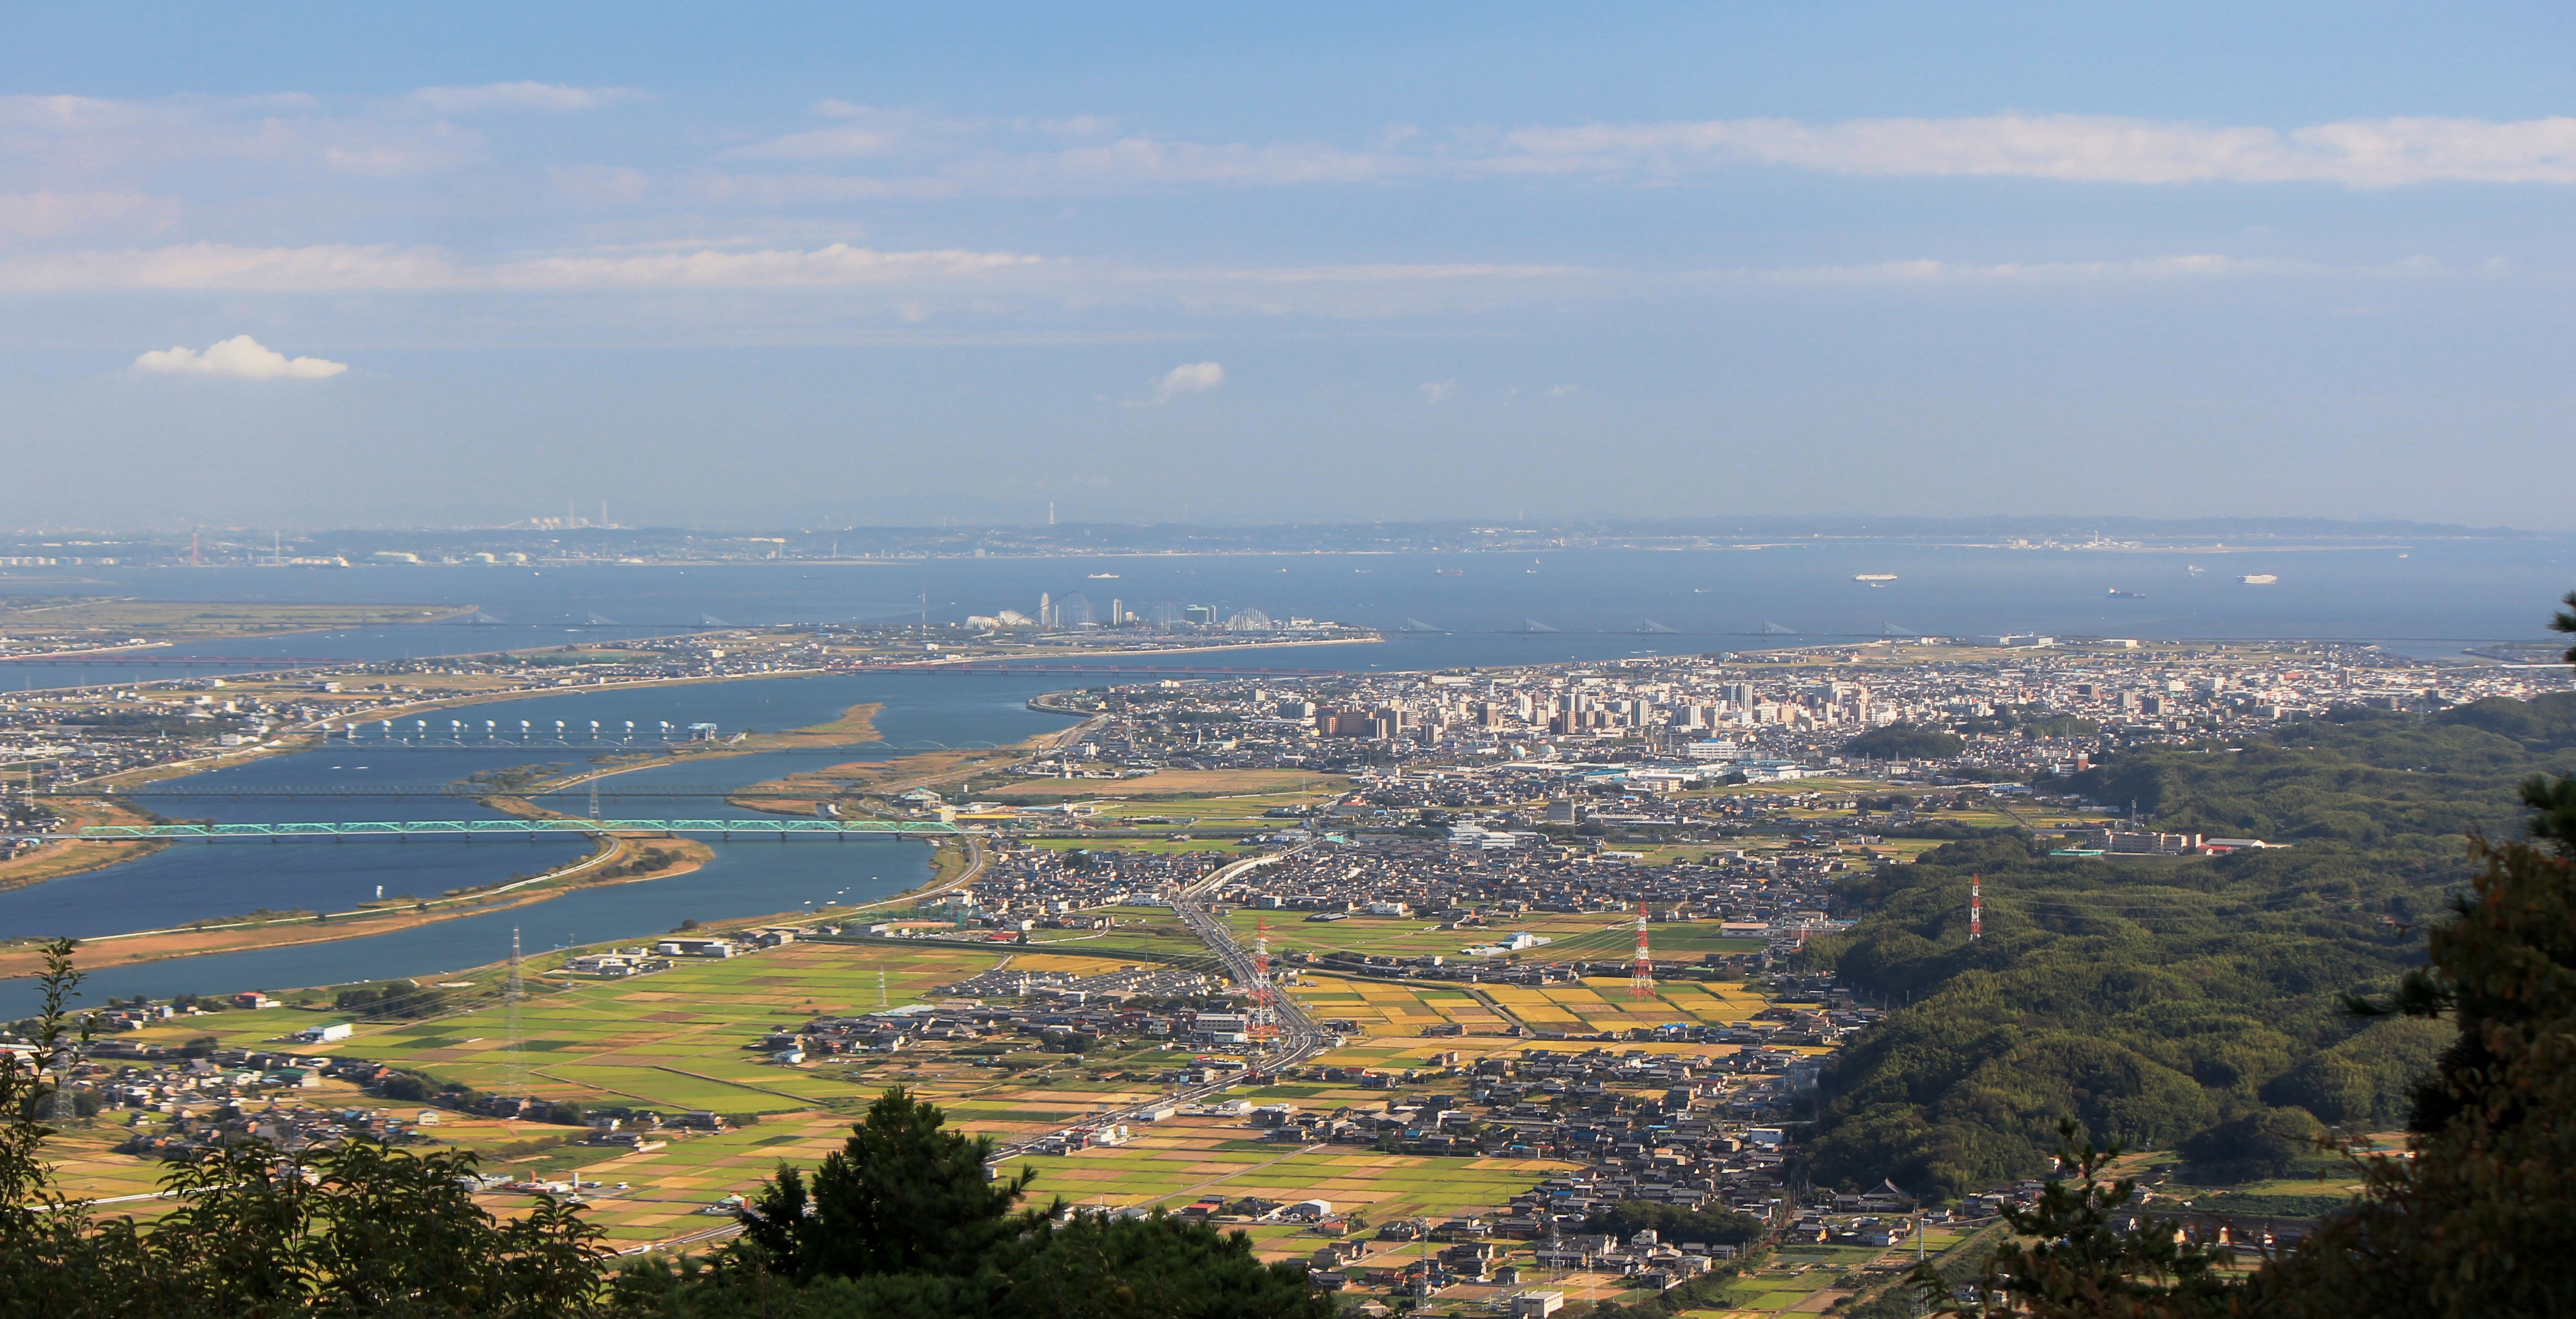 http://upload.wikimedia.org/wikipedia/commons/b/bf/Kuwana_from_Mount_Tado.JPG